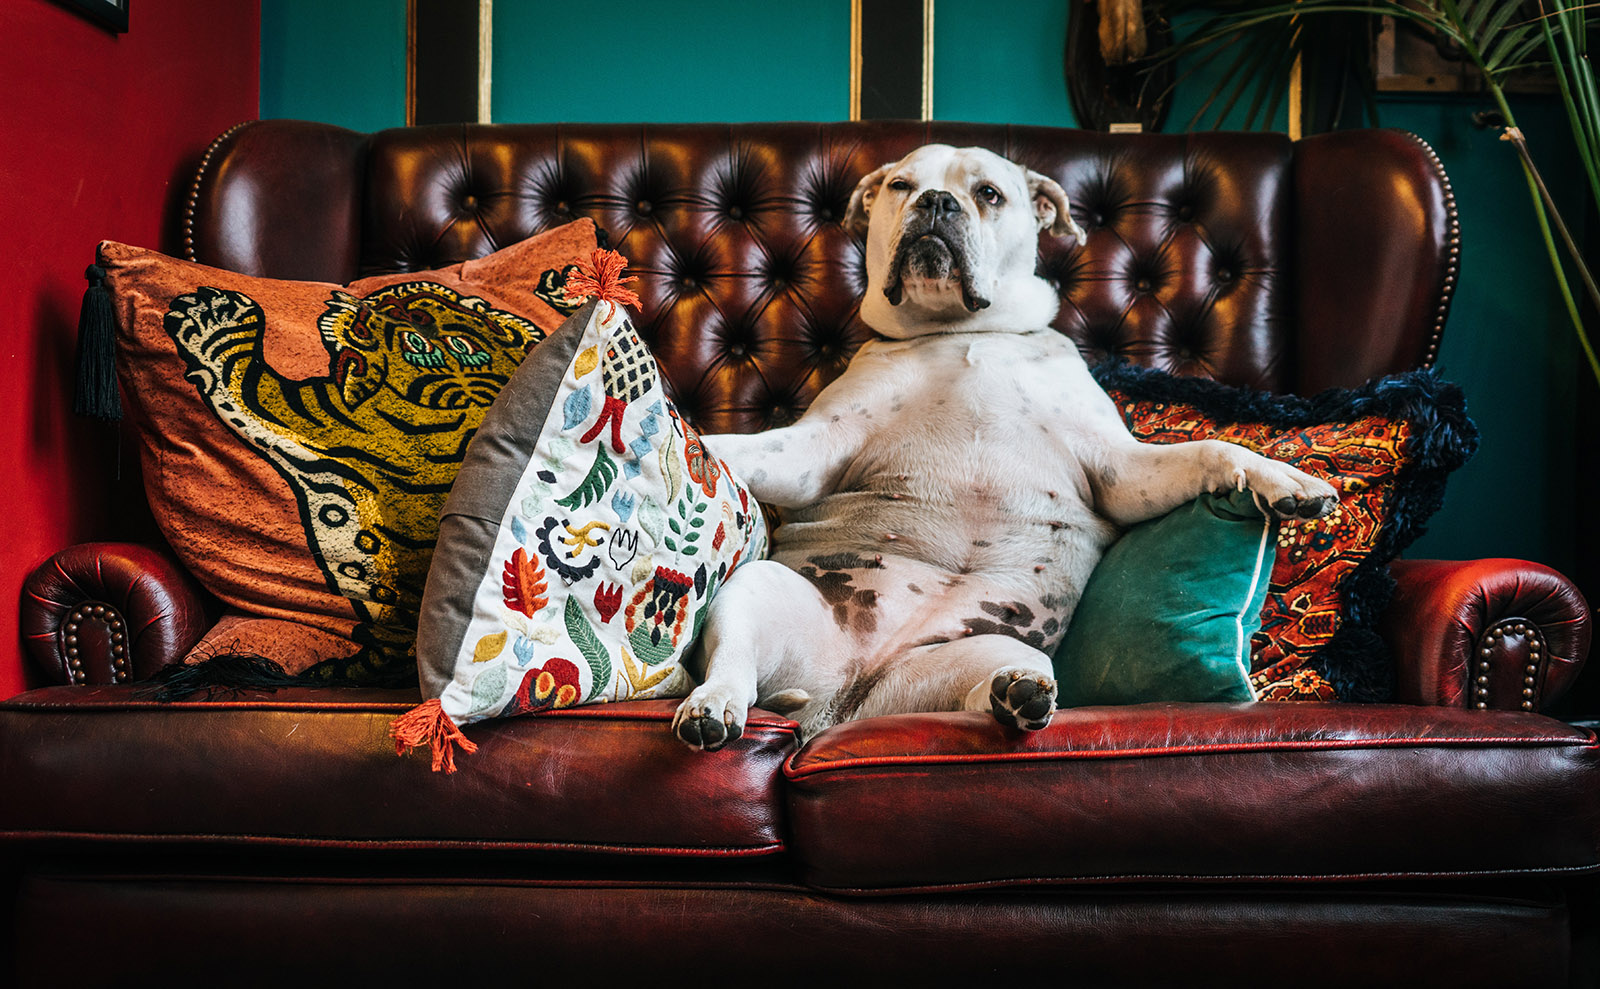 british bulldog sitting on a couch with throw pillows